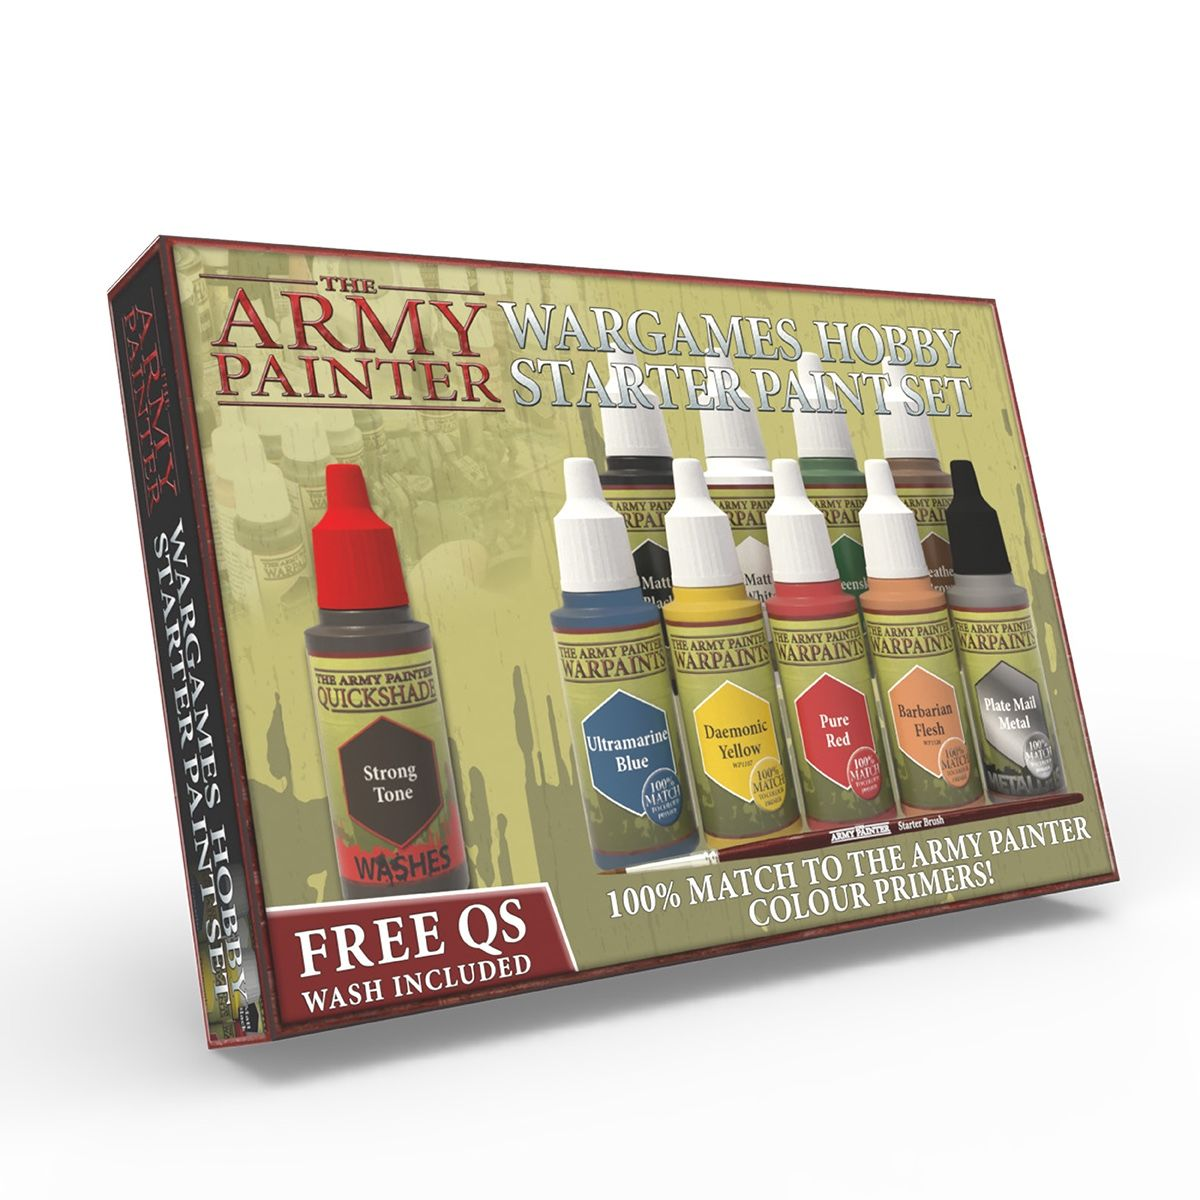 The Perfect Starter Paint Set For Any Wargaming System All The Base Colours You Need For Painting Miniatures In This Set You Will Find 10 Of The Most Needed C